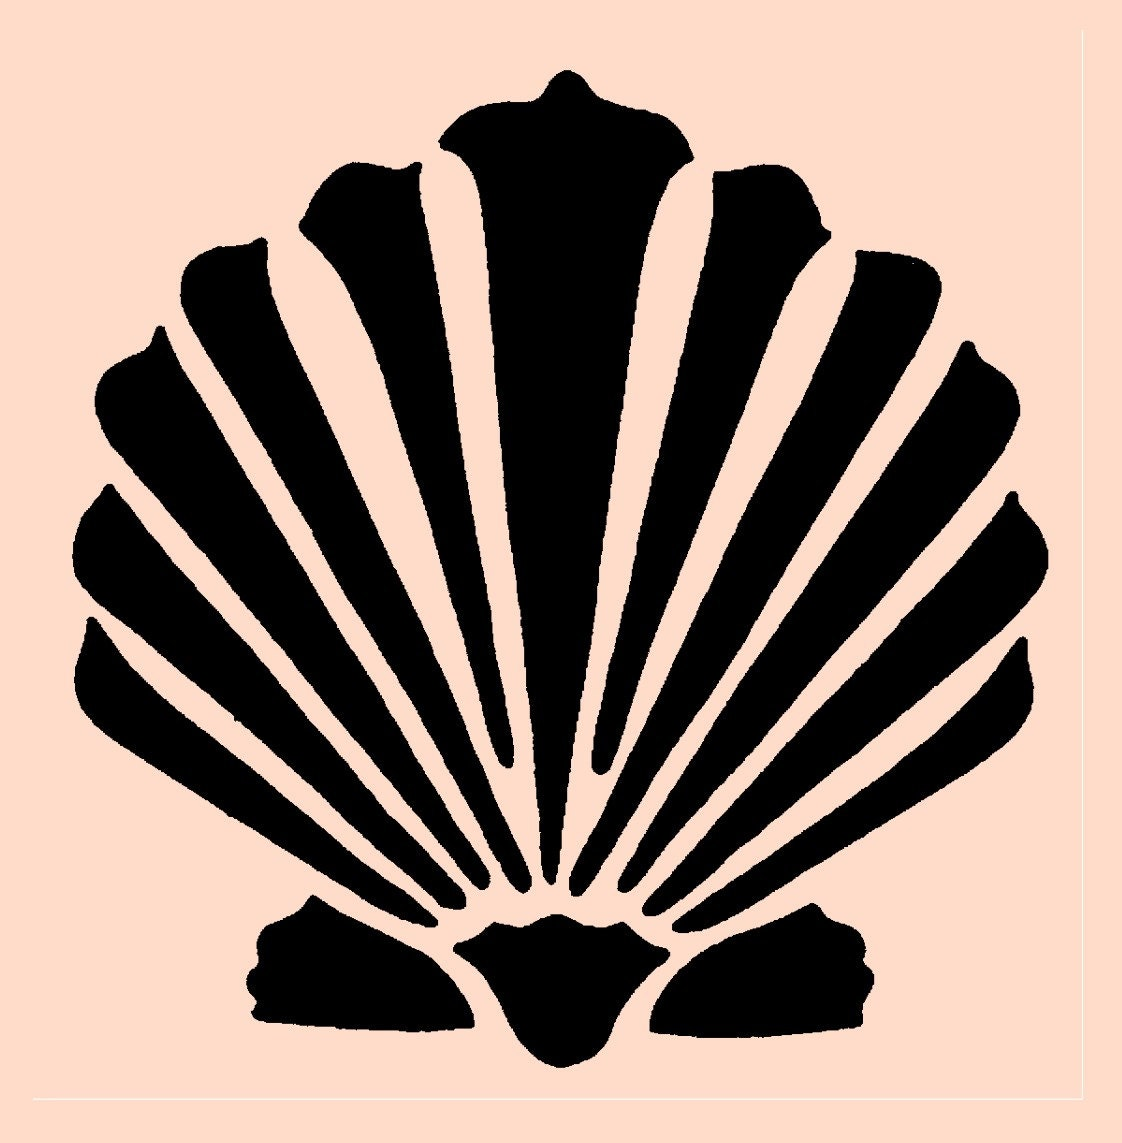 Handy image with seashell stencil printable